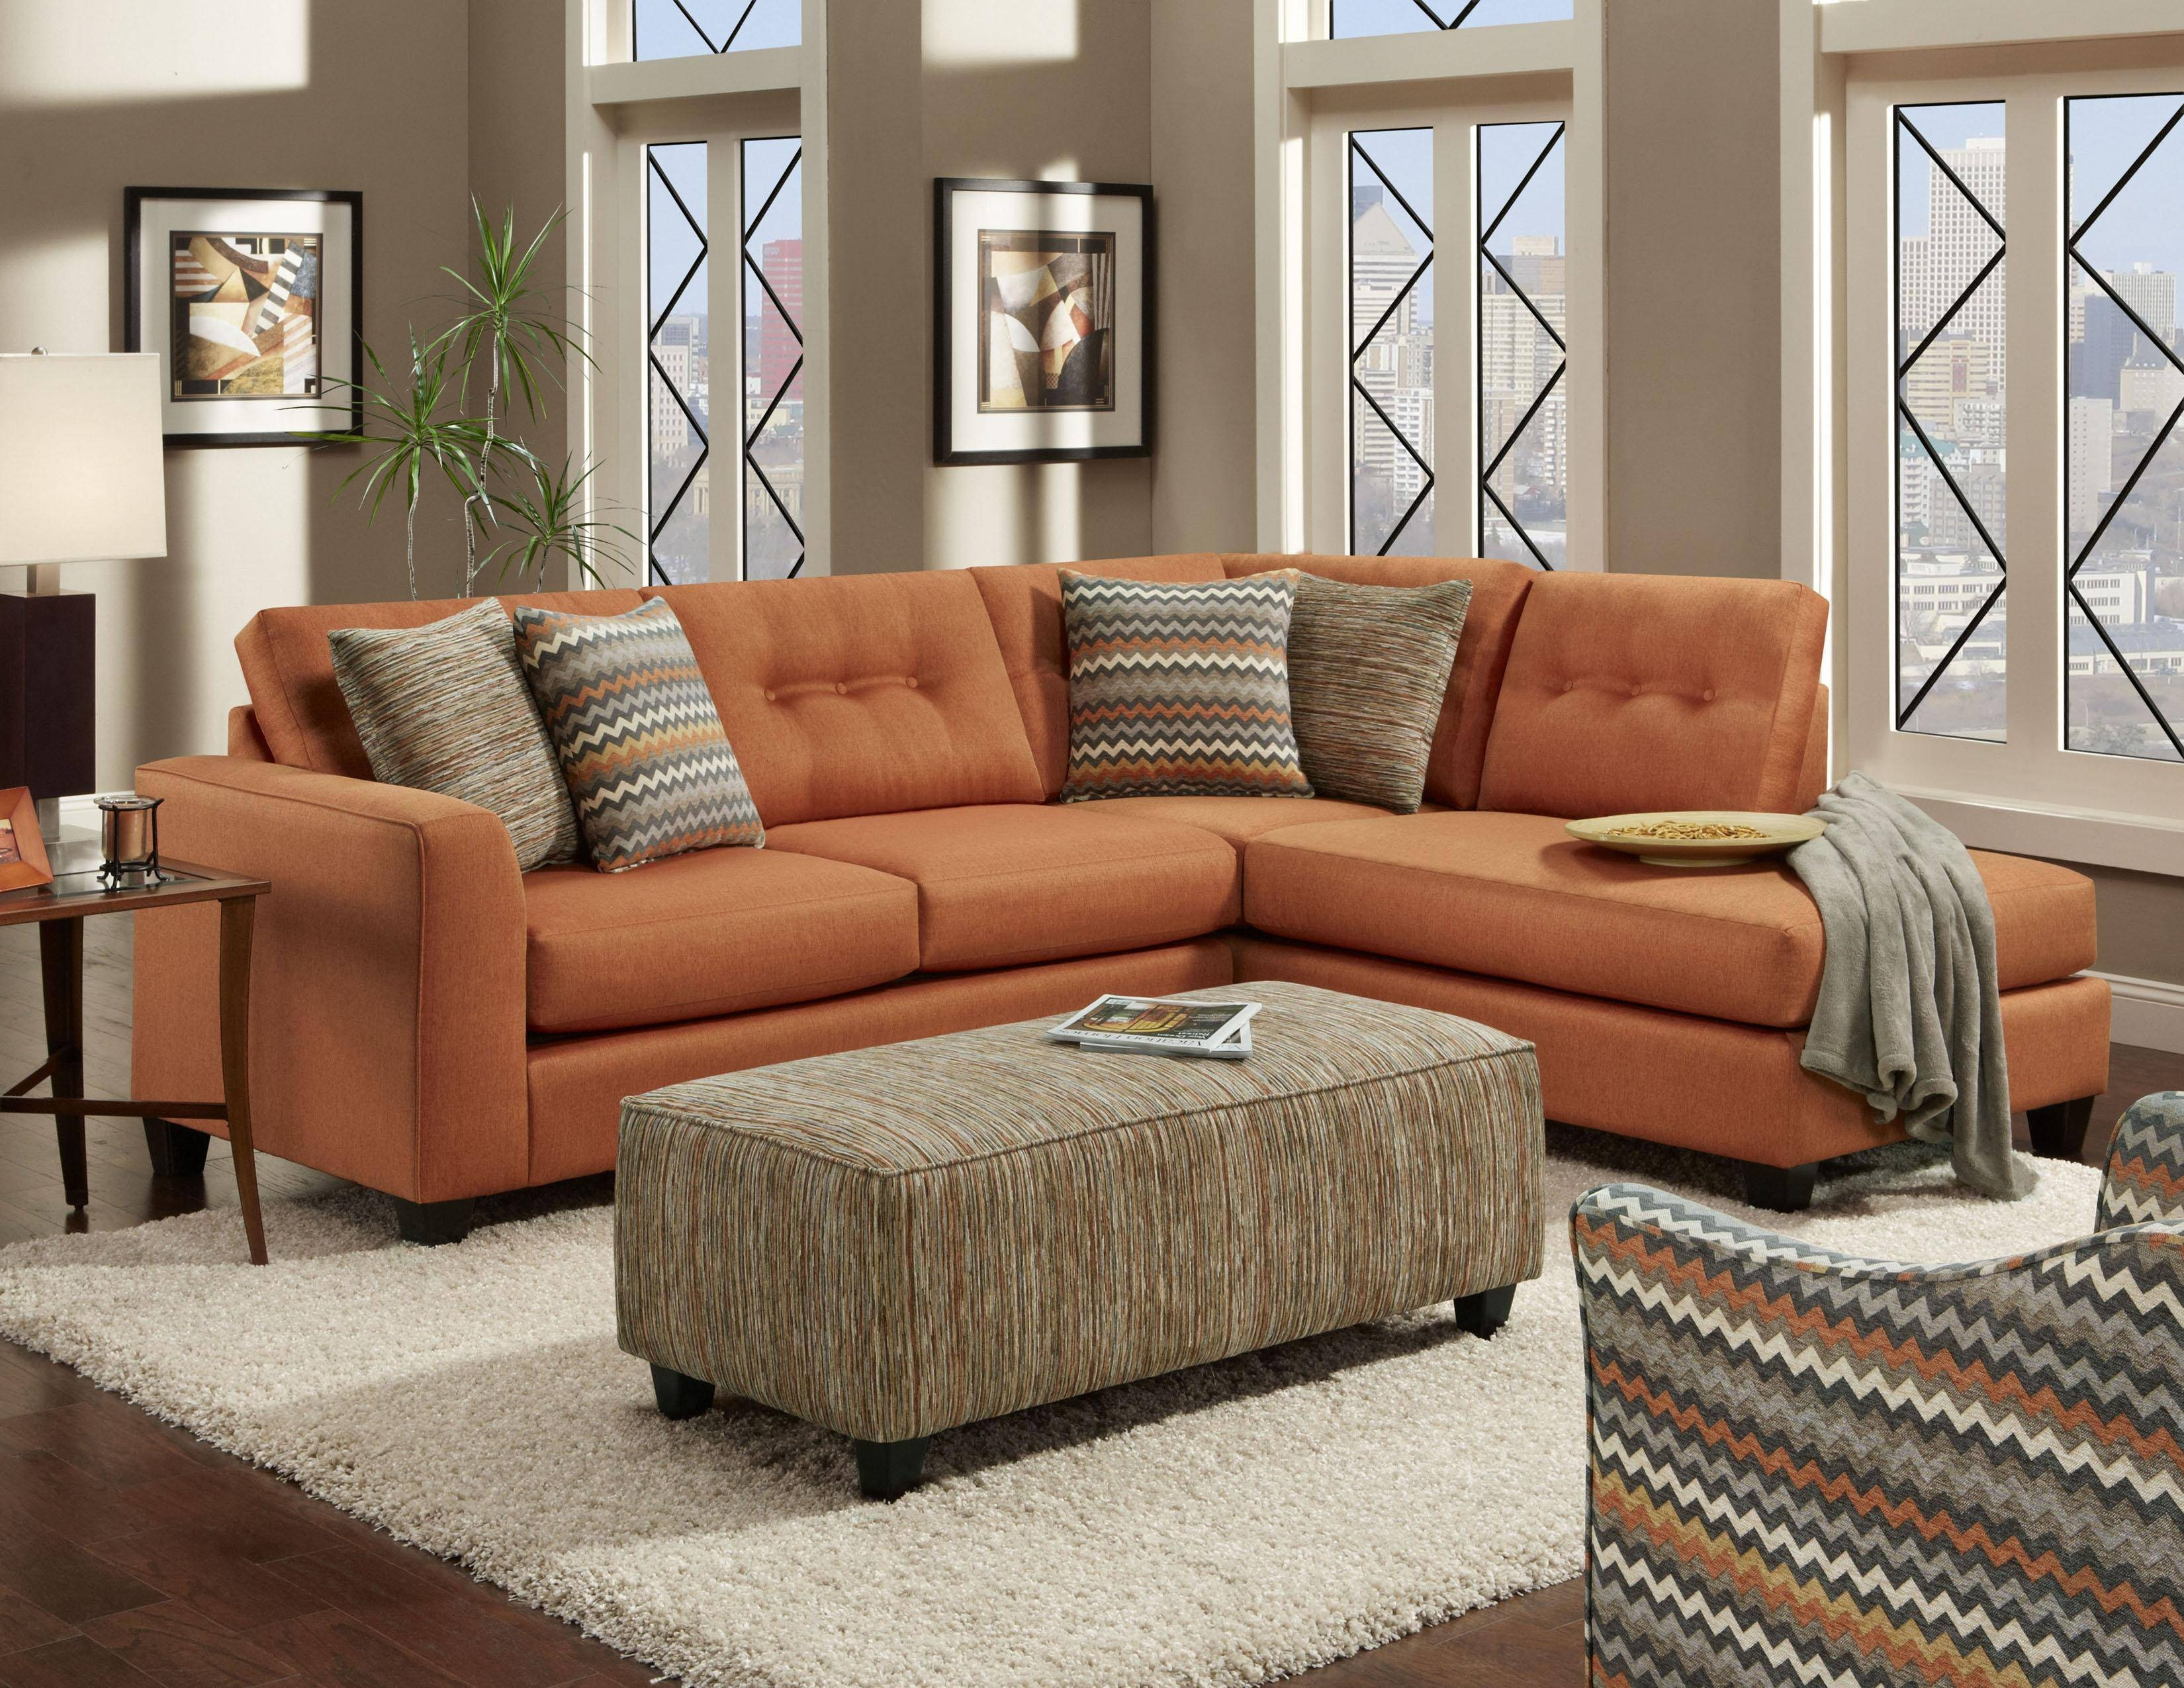 tosh ideas empire of fabric luxury best furniture usa fort fresh sofa design sectional modern sofas gray by